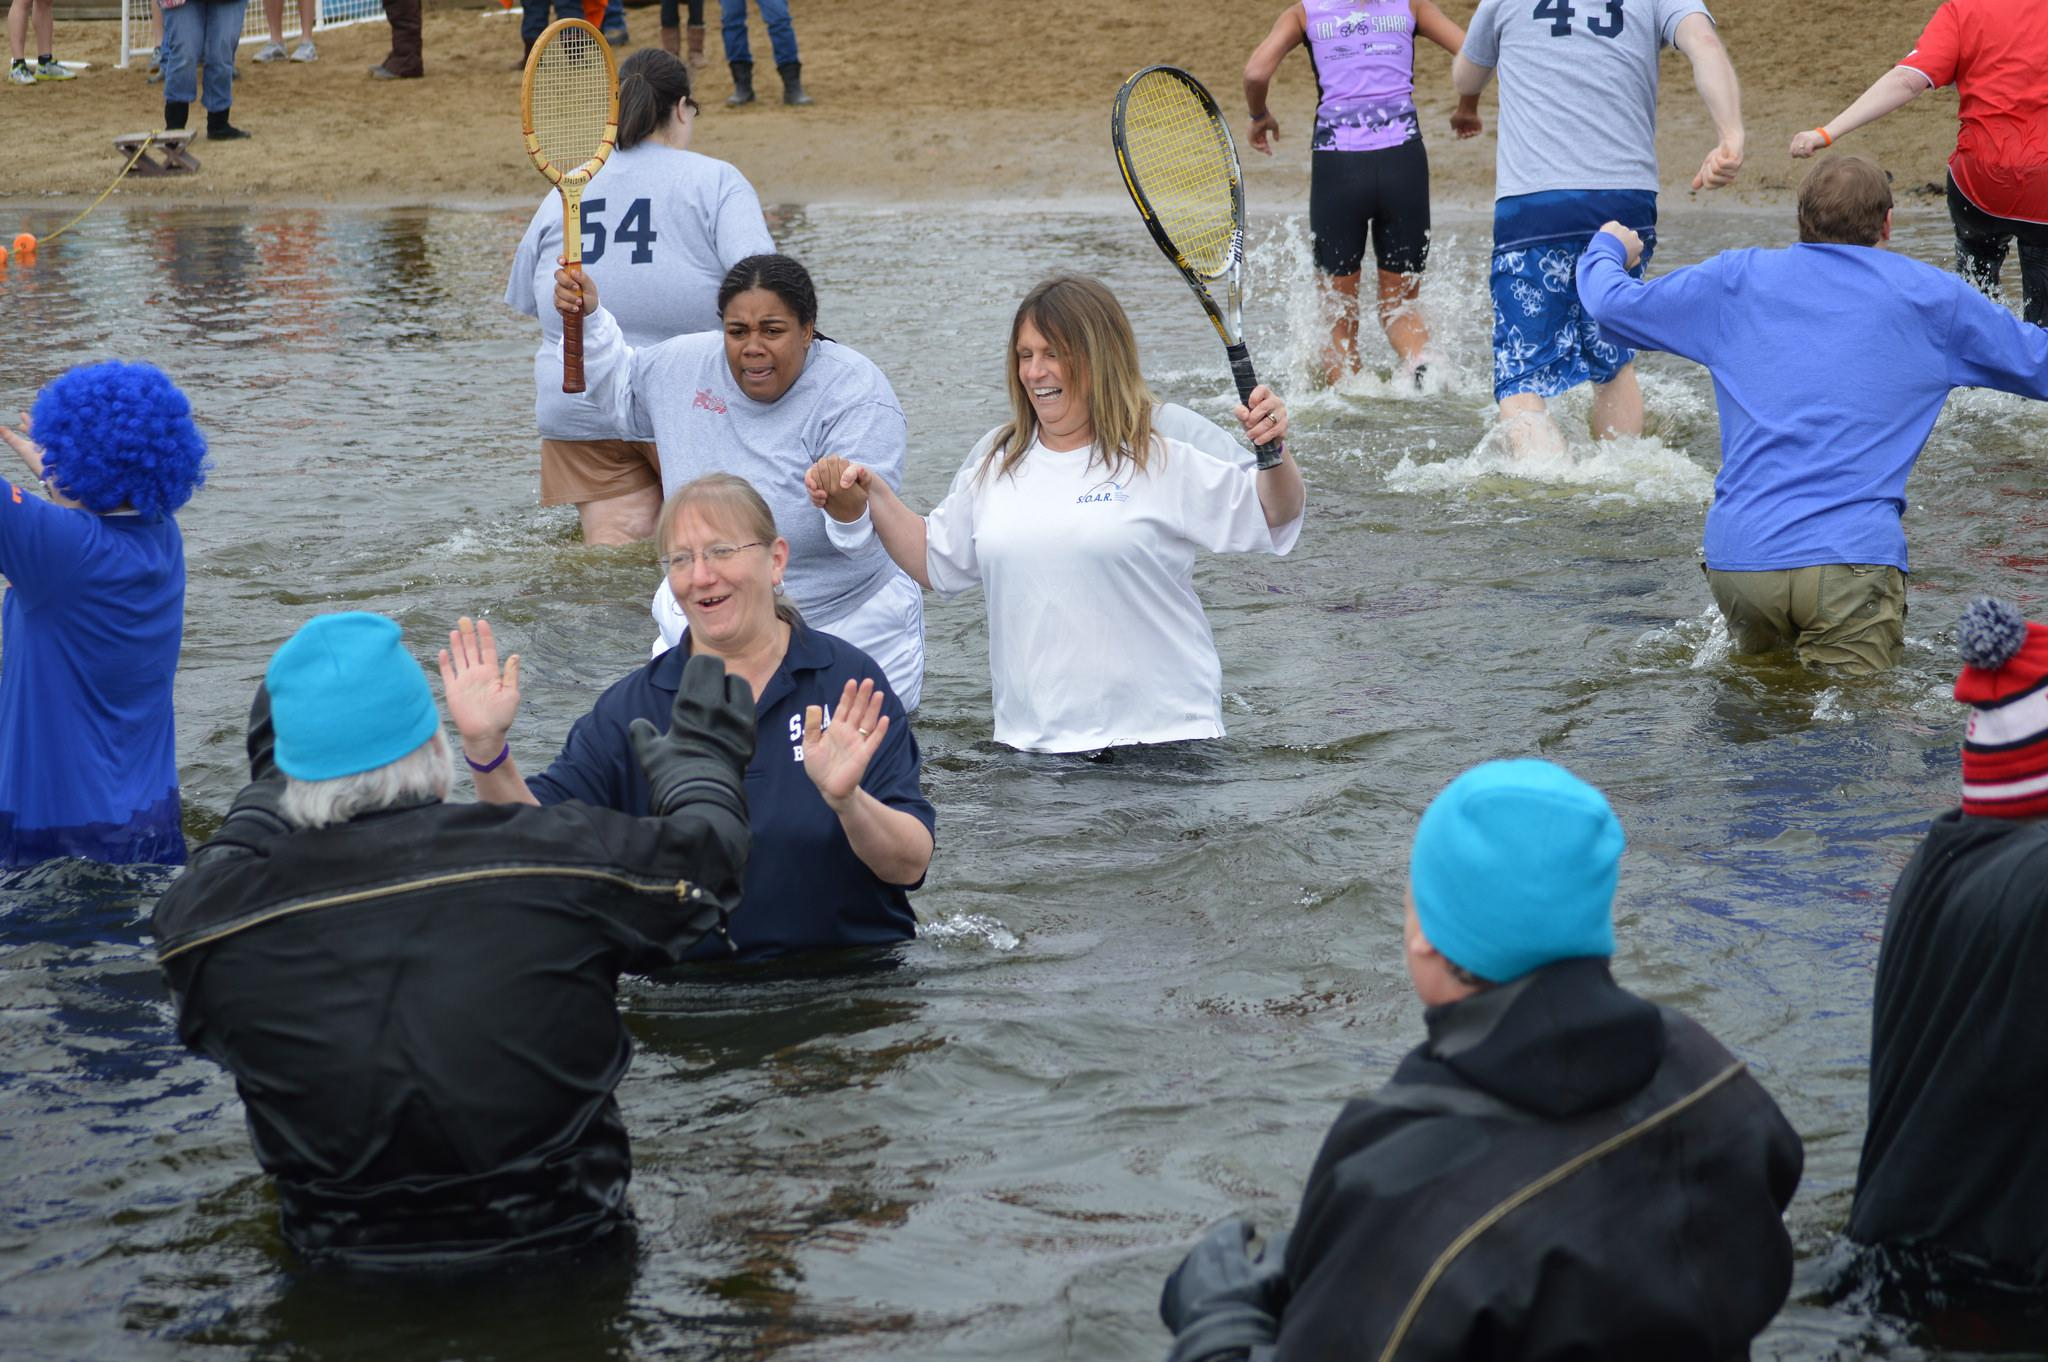 Polar plunge raises money for Special Olympics